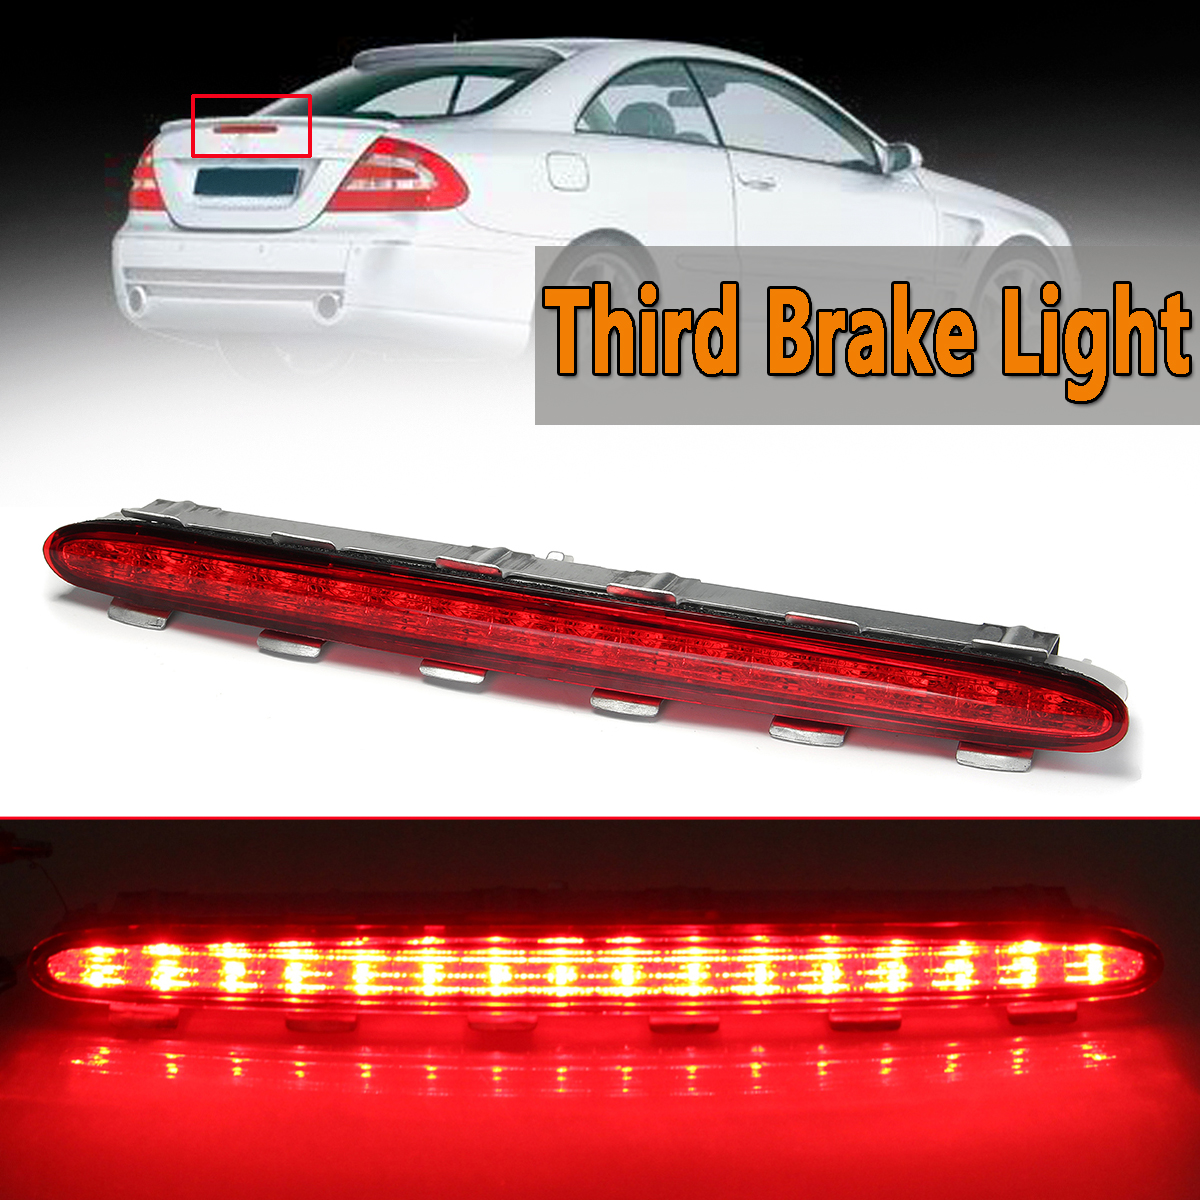 LED Car Rear Third Brake Lights Tail Lamp For Benz For Mercedes CLK W209 2002-2009 Car Styling Rear Roof Warning Light Red